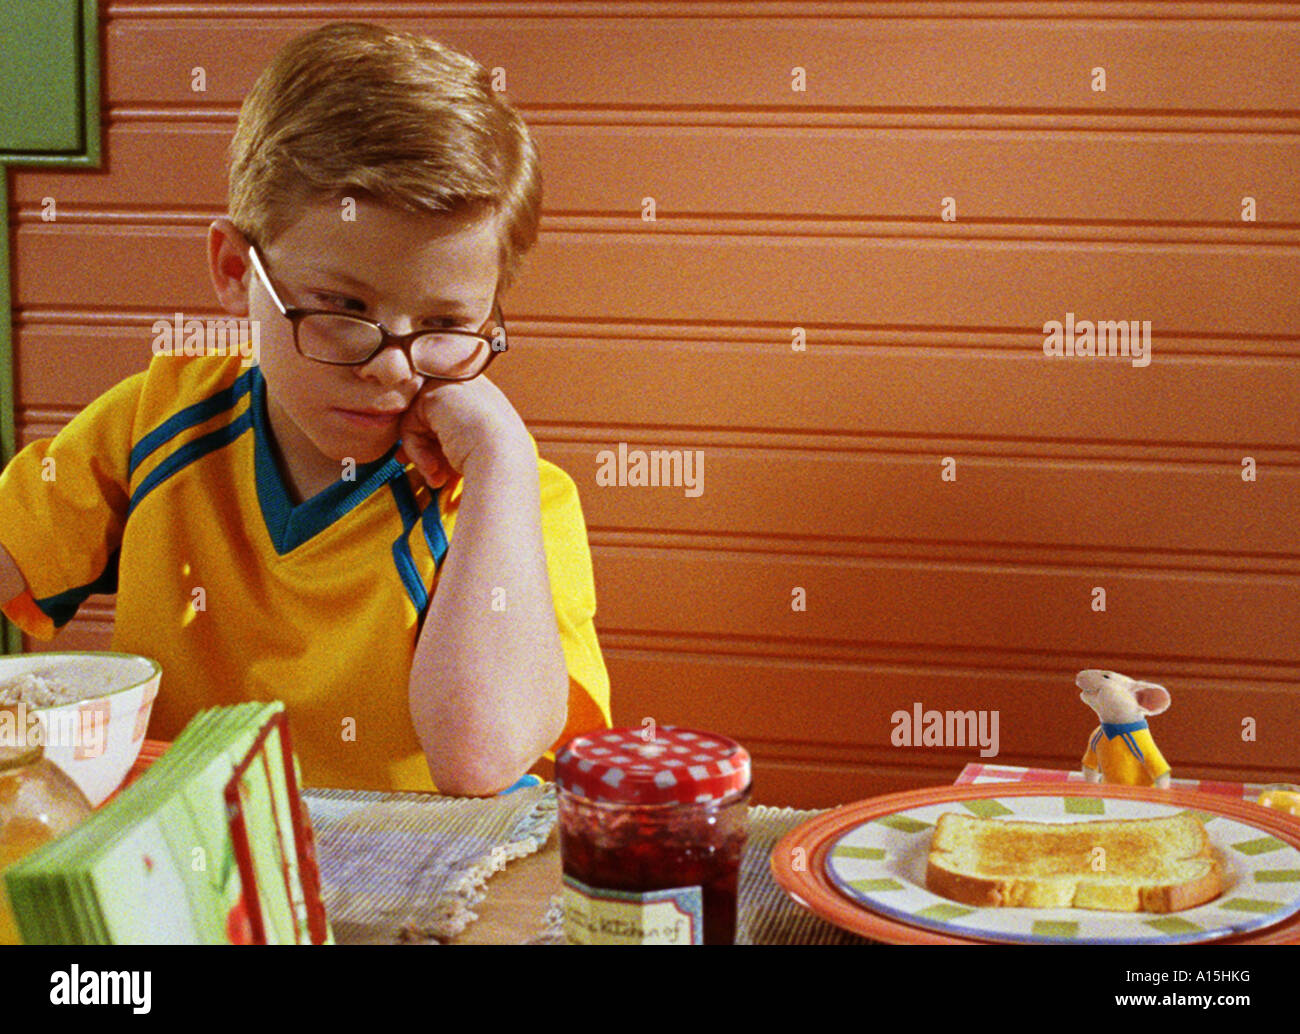 Stuart Little 2 High Resolution Stock Photography And Images Alamy